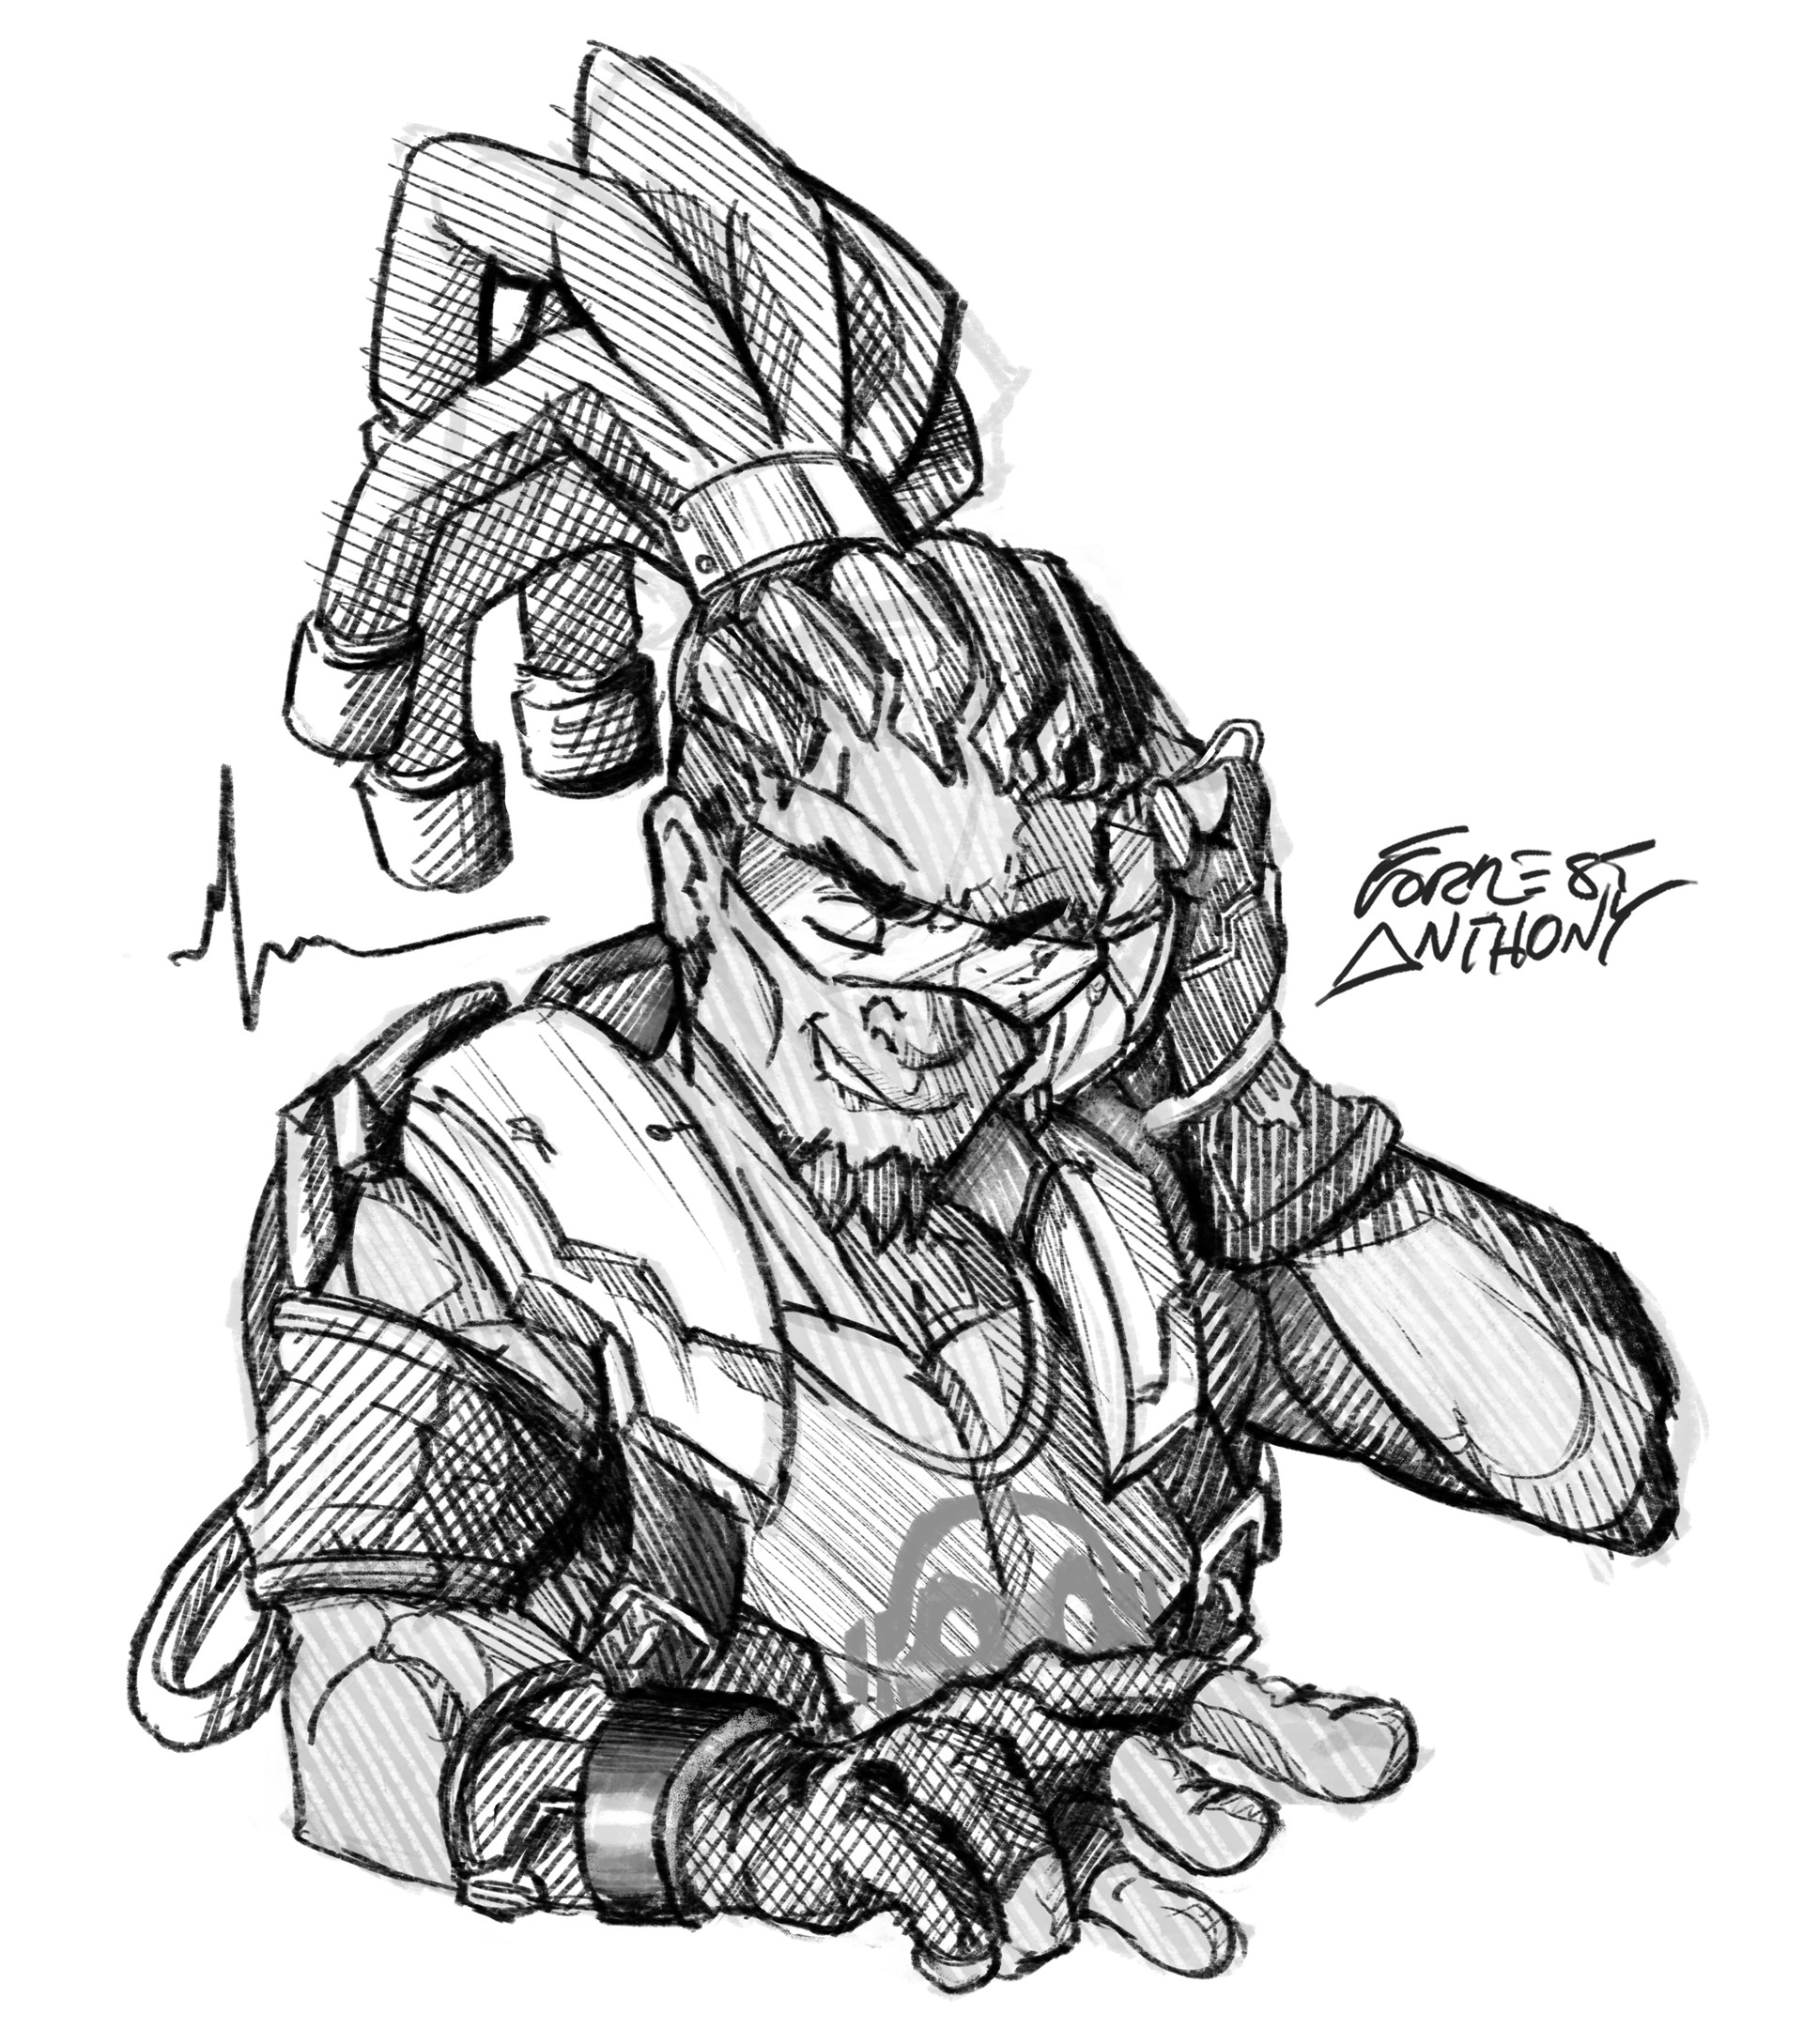 Forrest Anthony Overwatch Hero Sketches